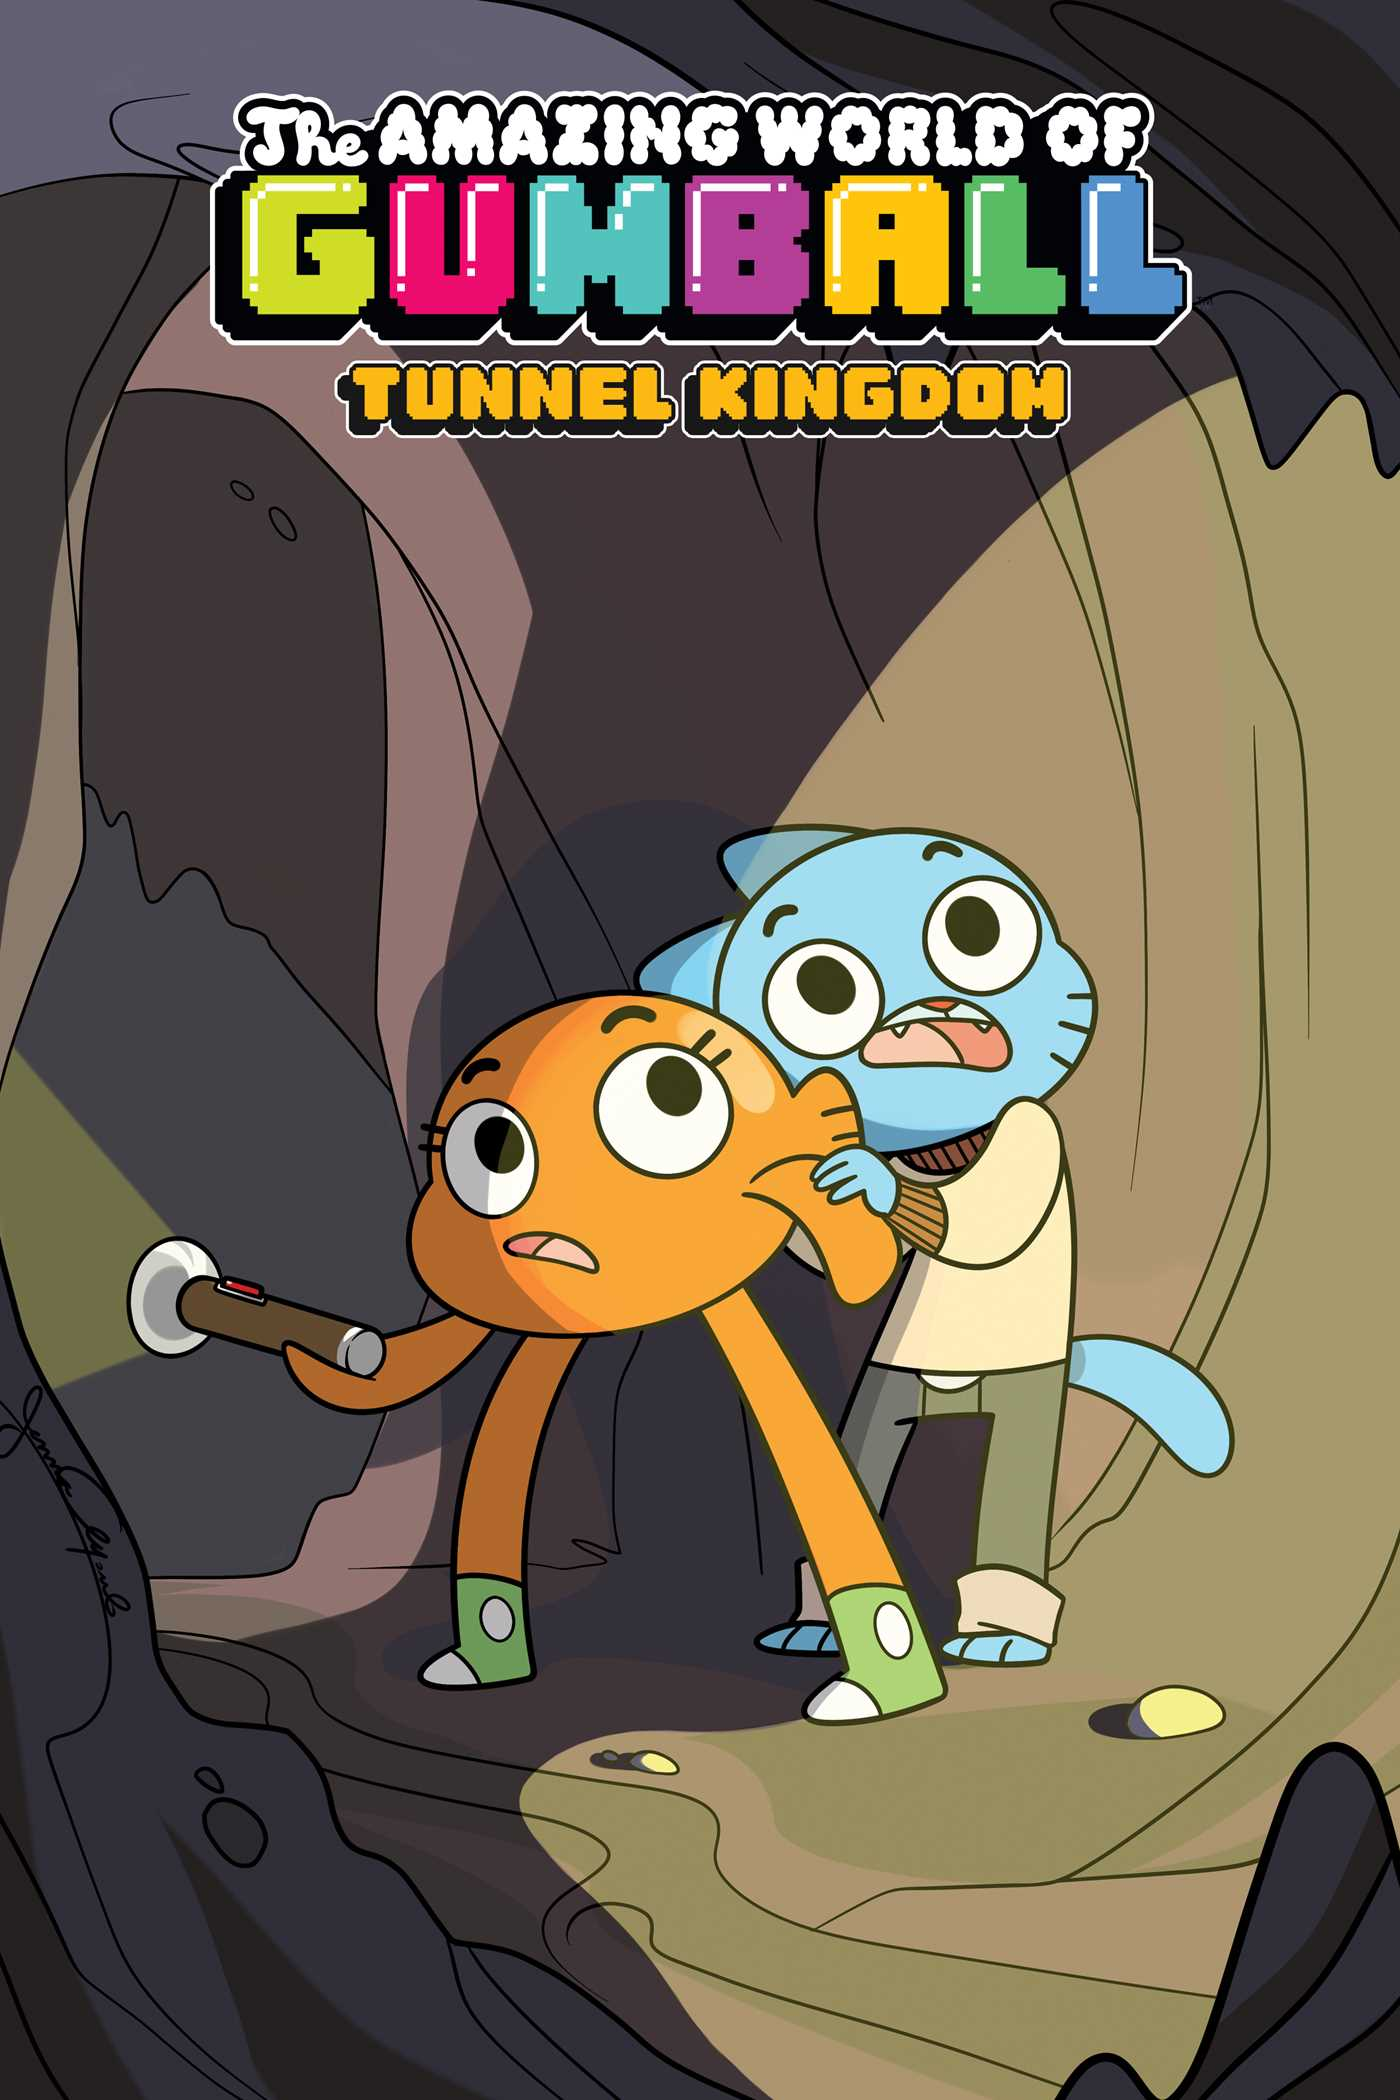 The amazing world of gumball tunnel kingdom 9781684152353 hr